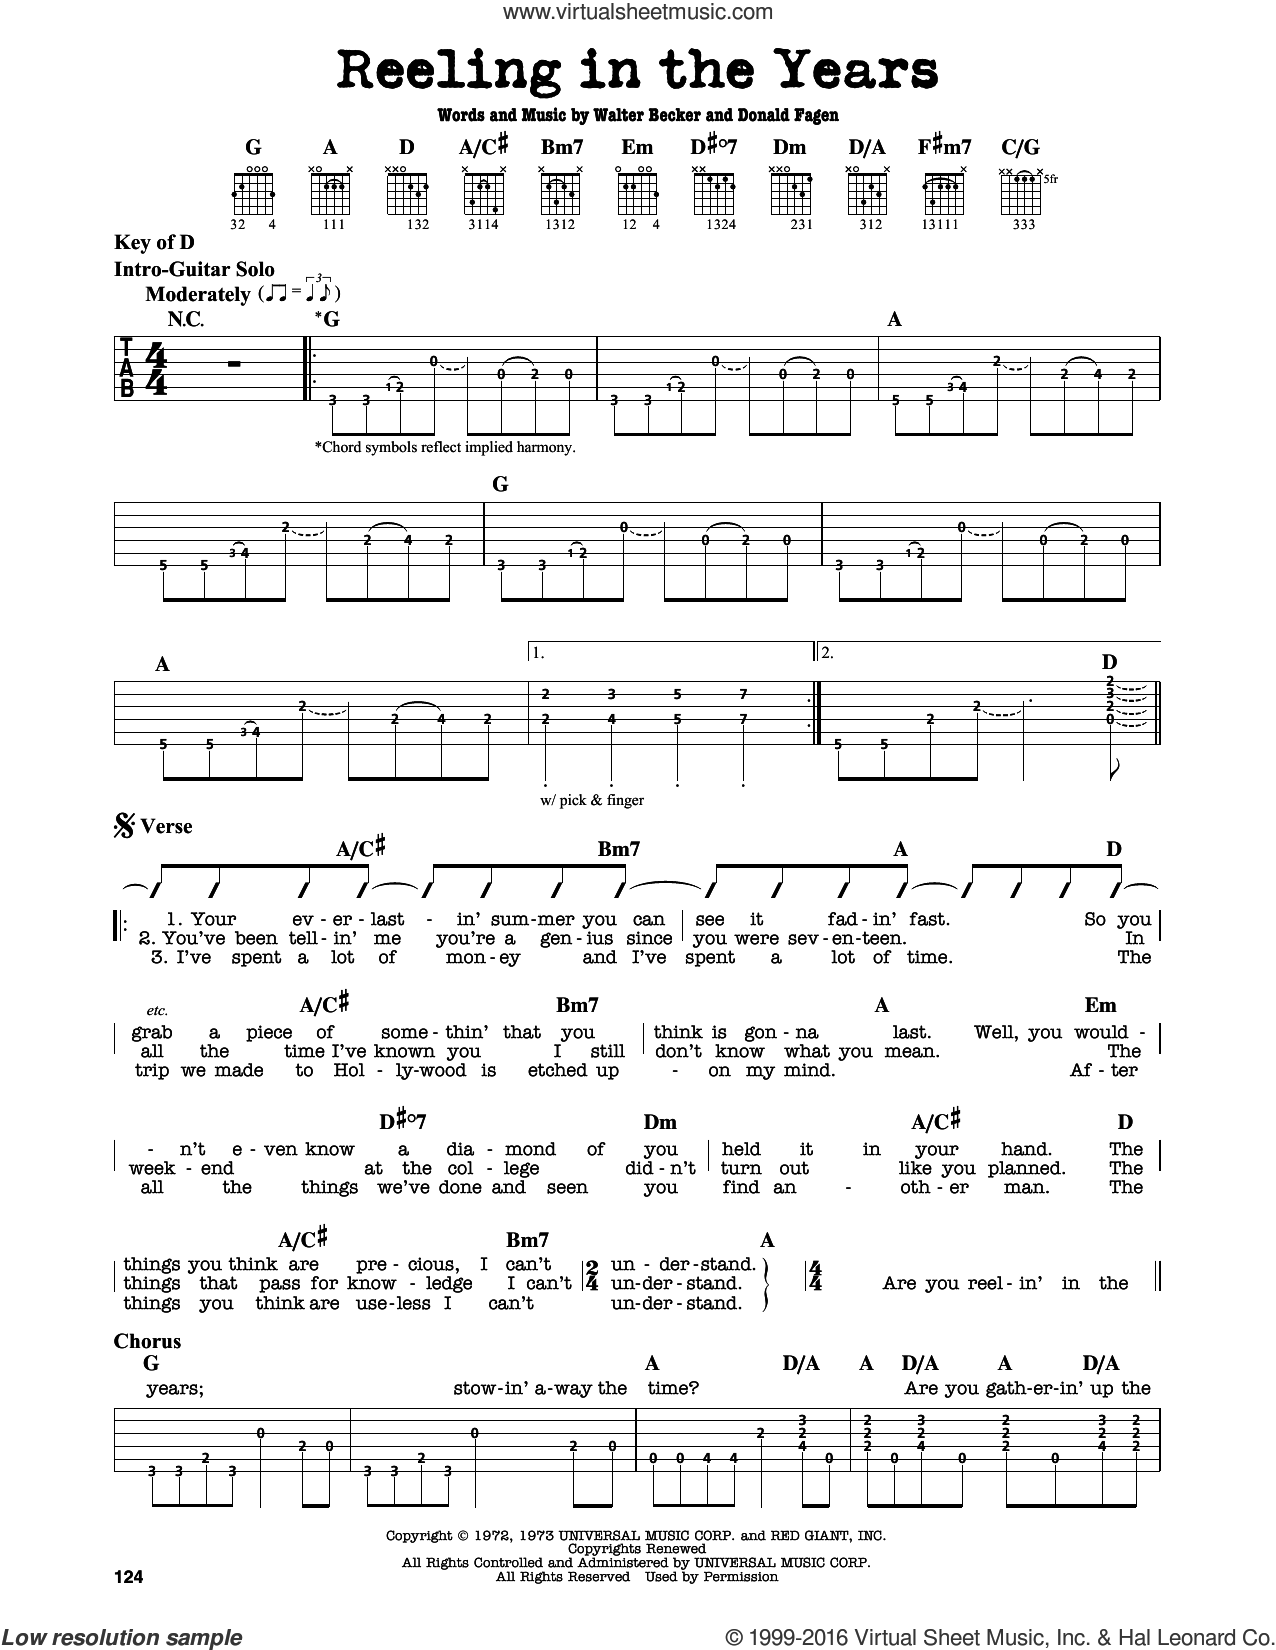 Reeling In The Years sheet music for guitar solo (lead sheet) by Walter Becker and Donald Fagen. Score Image Preview.